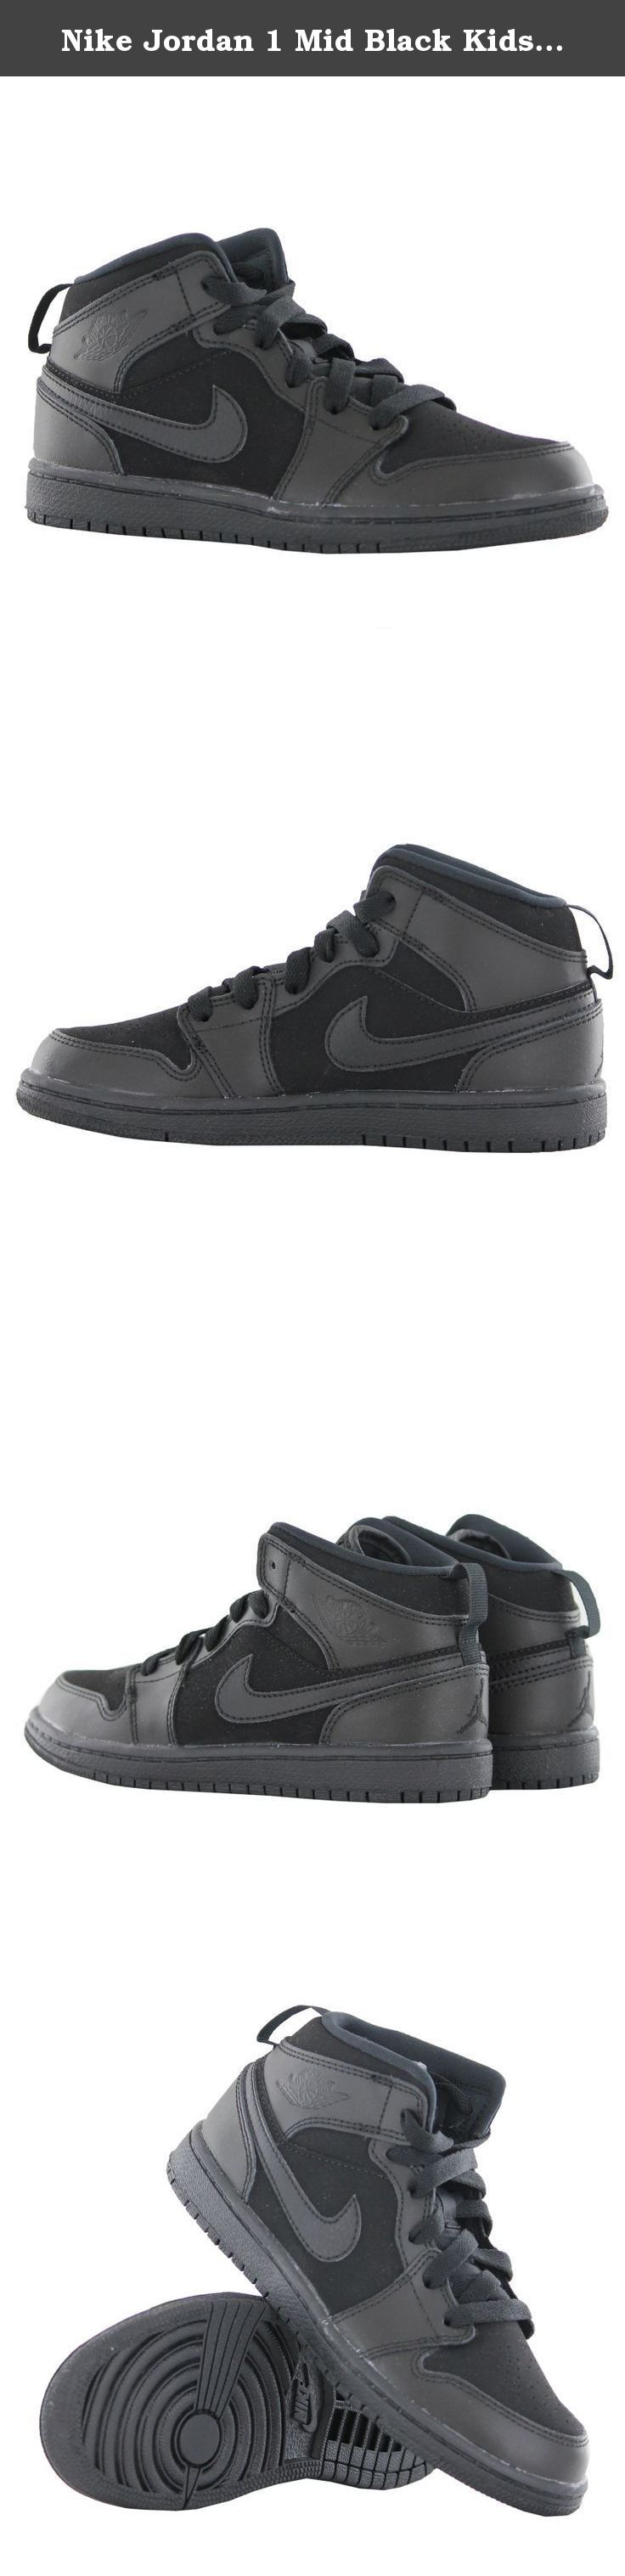 Nike Jordan 1 Mid Black Kids Trainers Kids 13 UK. Nike's Jordan 1 Mid are perfect to be used as working-out & running trainers or for any casual occasion. Their leather + synthetic upper ensures the durability of the shoes, textile lining gives softness while wearing, and synthetic sole provides extra tr.